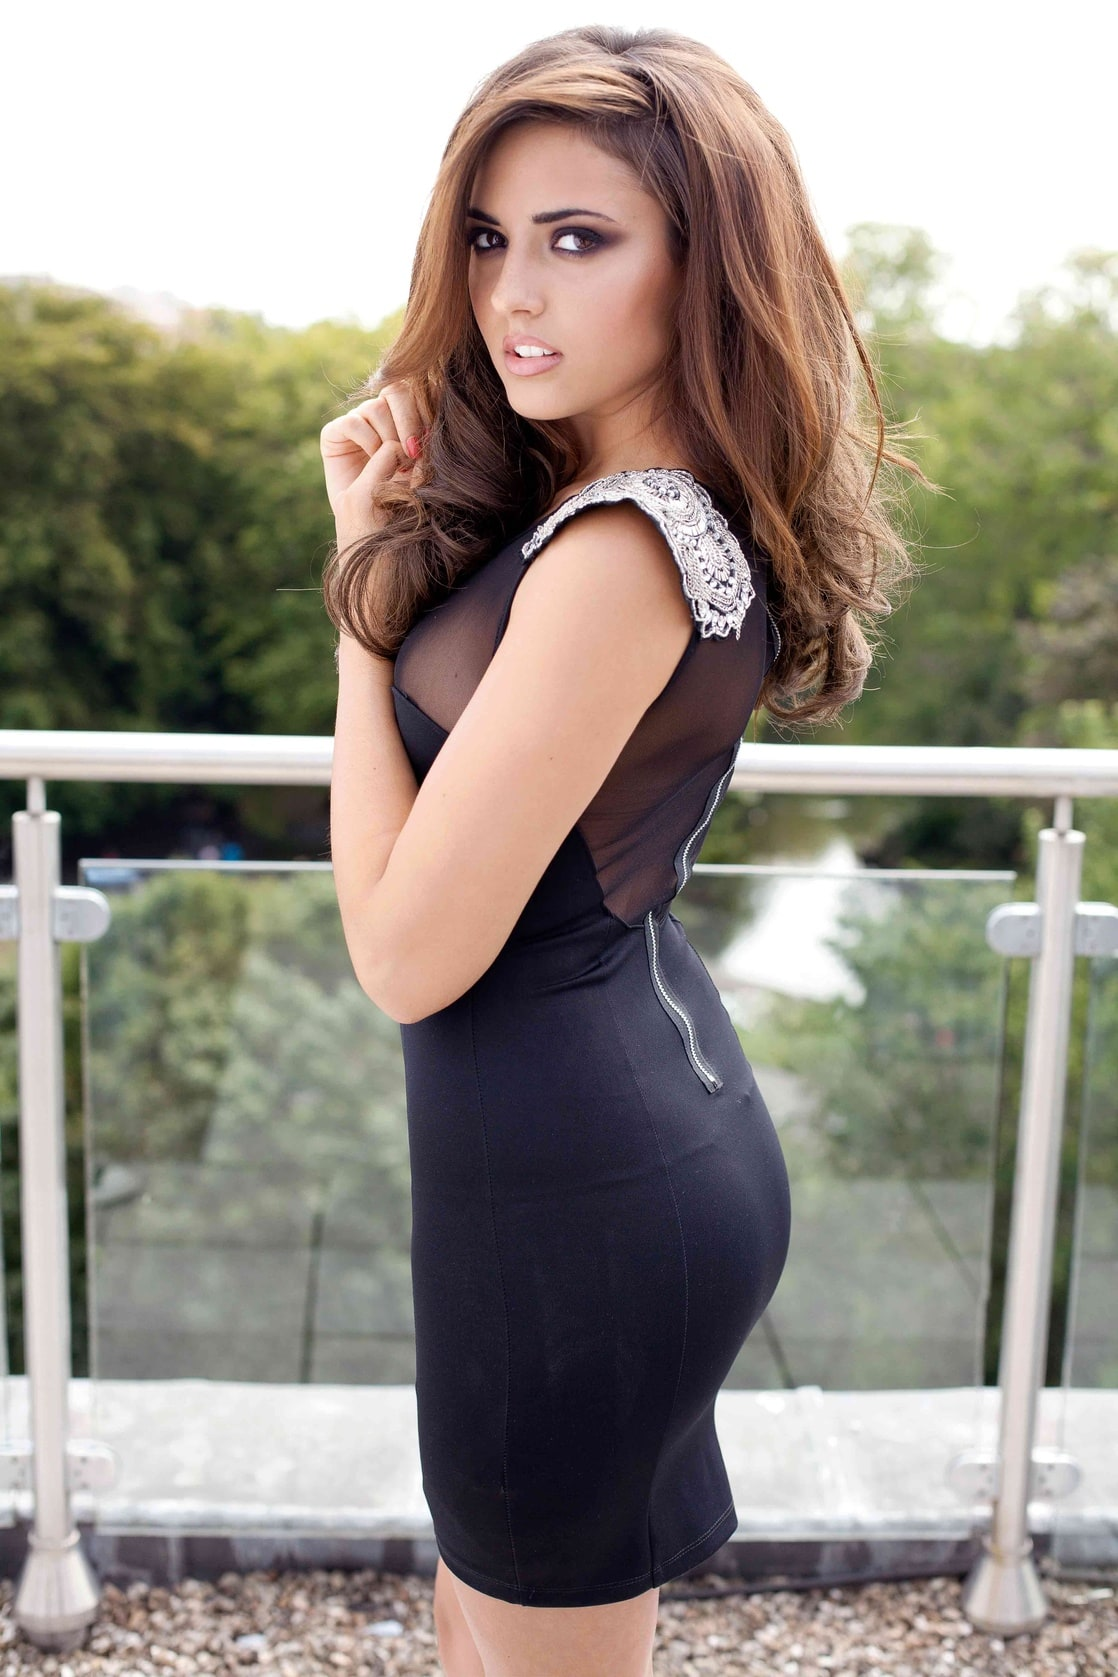 Picture of Nadia Forde | nadia forde